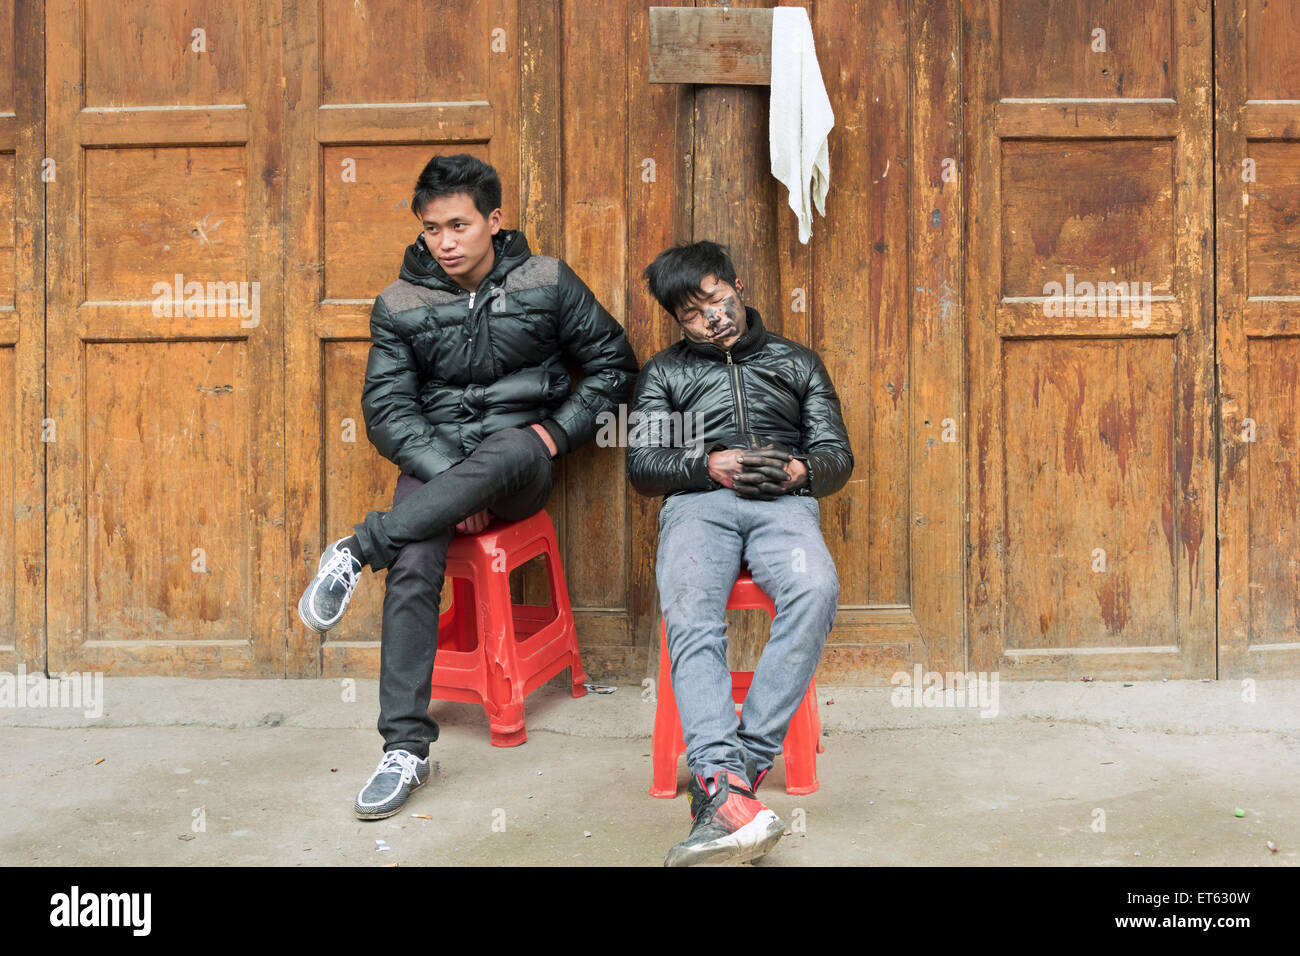 Standing by his sleeping friend, Huanggang Dong Village, Guizhou Province, China - Stock Image